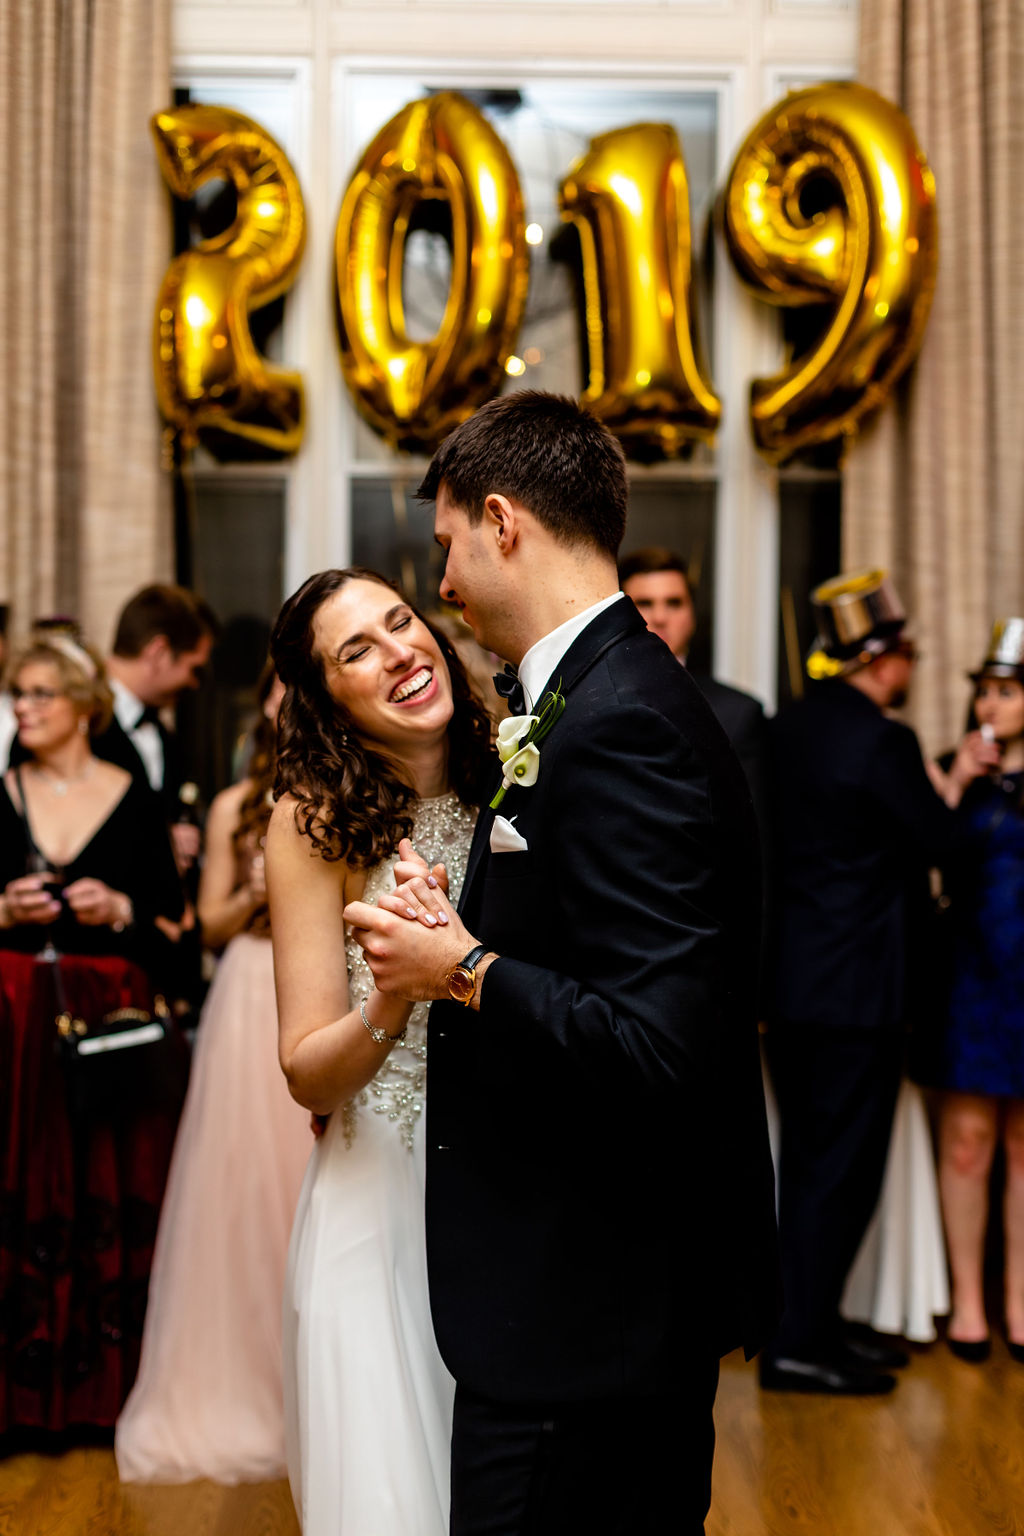 First dance photos at a unique historic wedding venue in connecticut - Pearl Weddings & Events